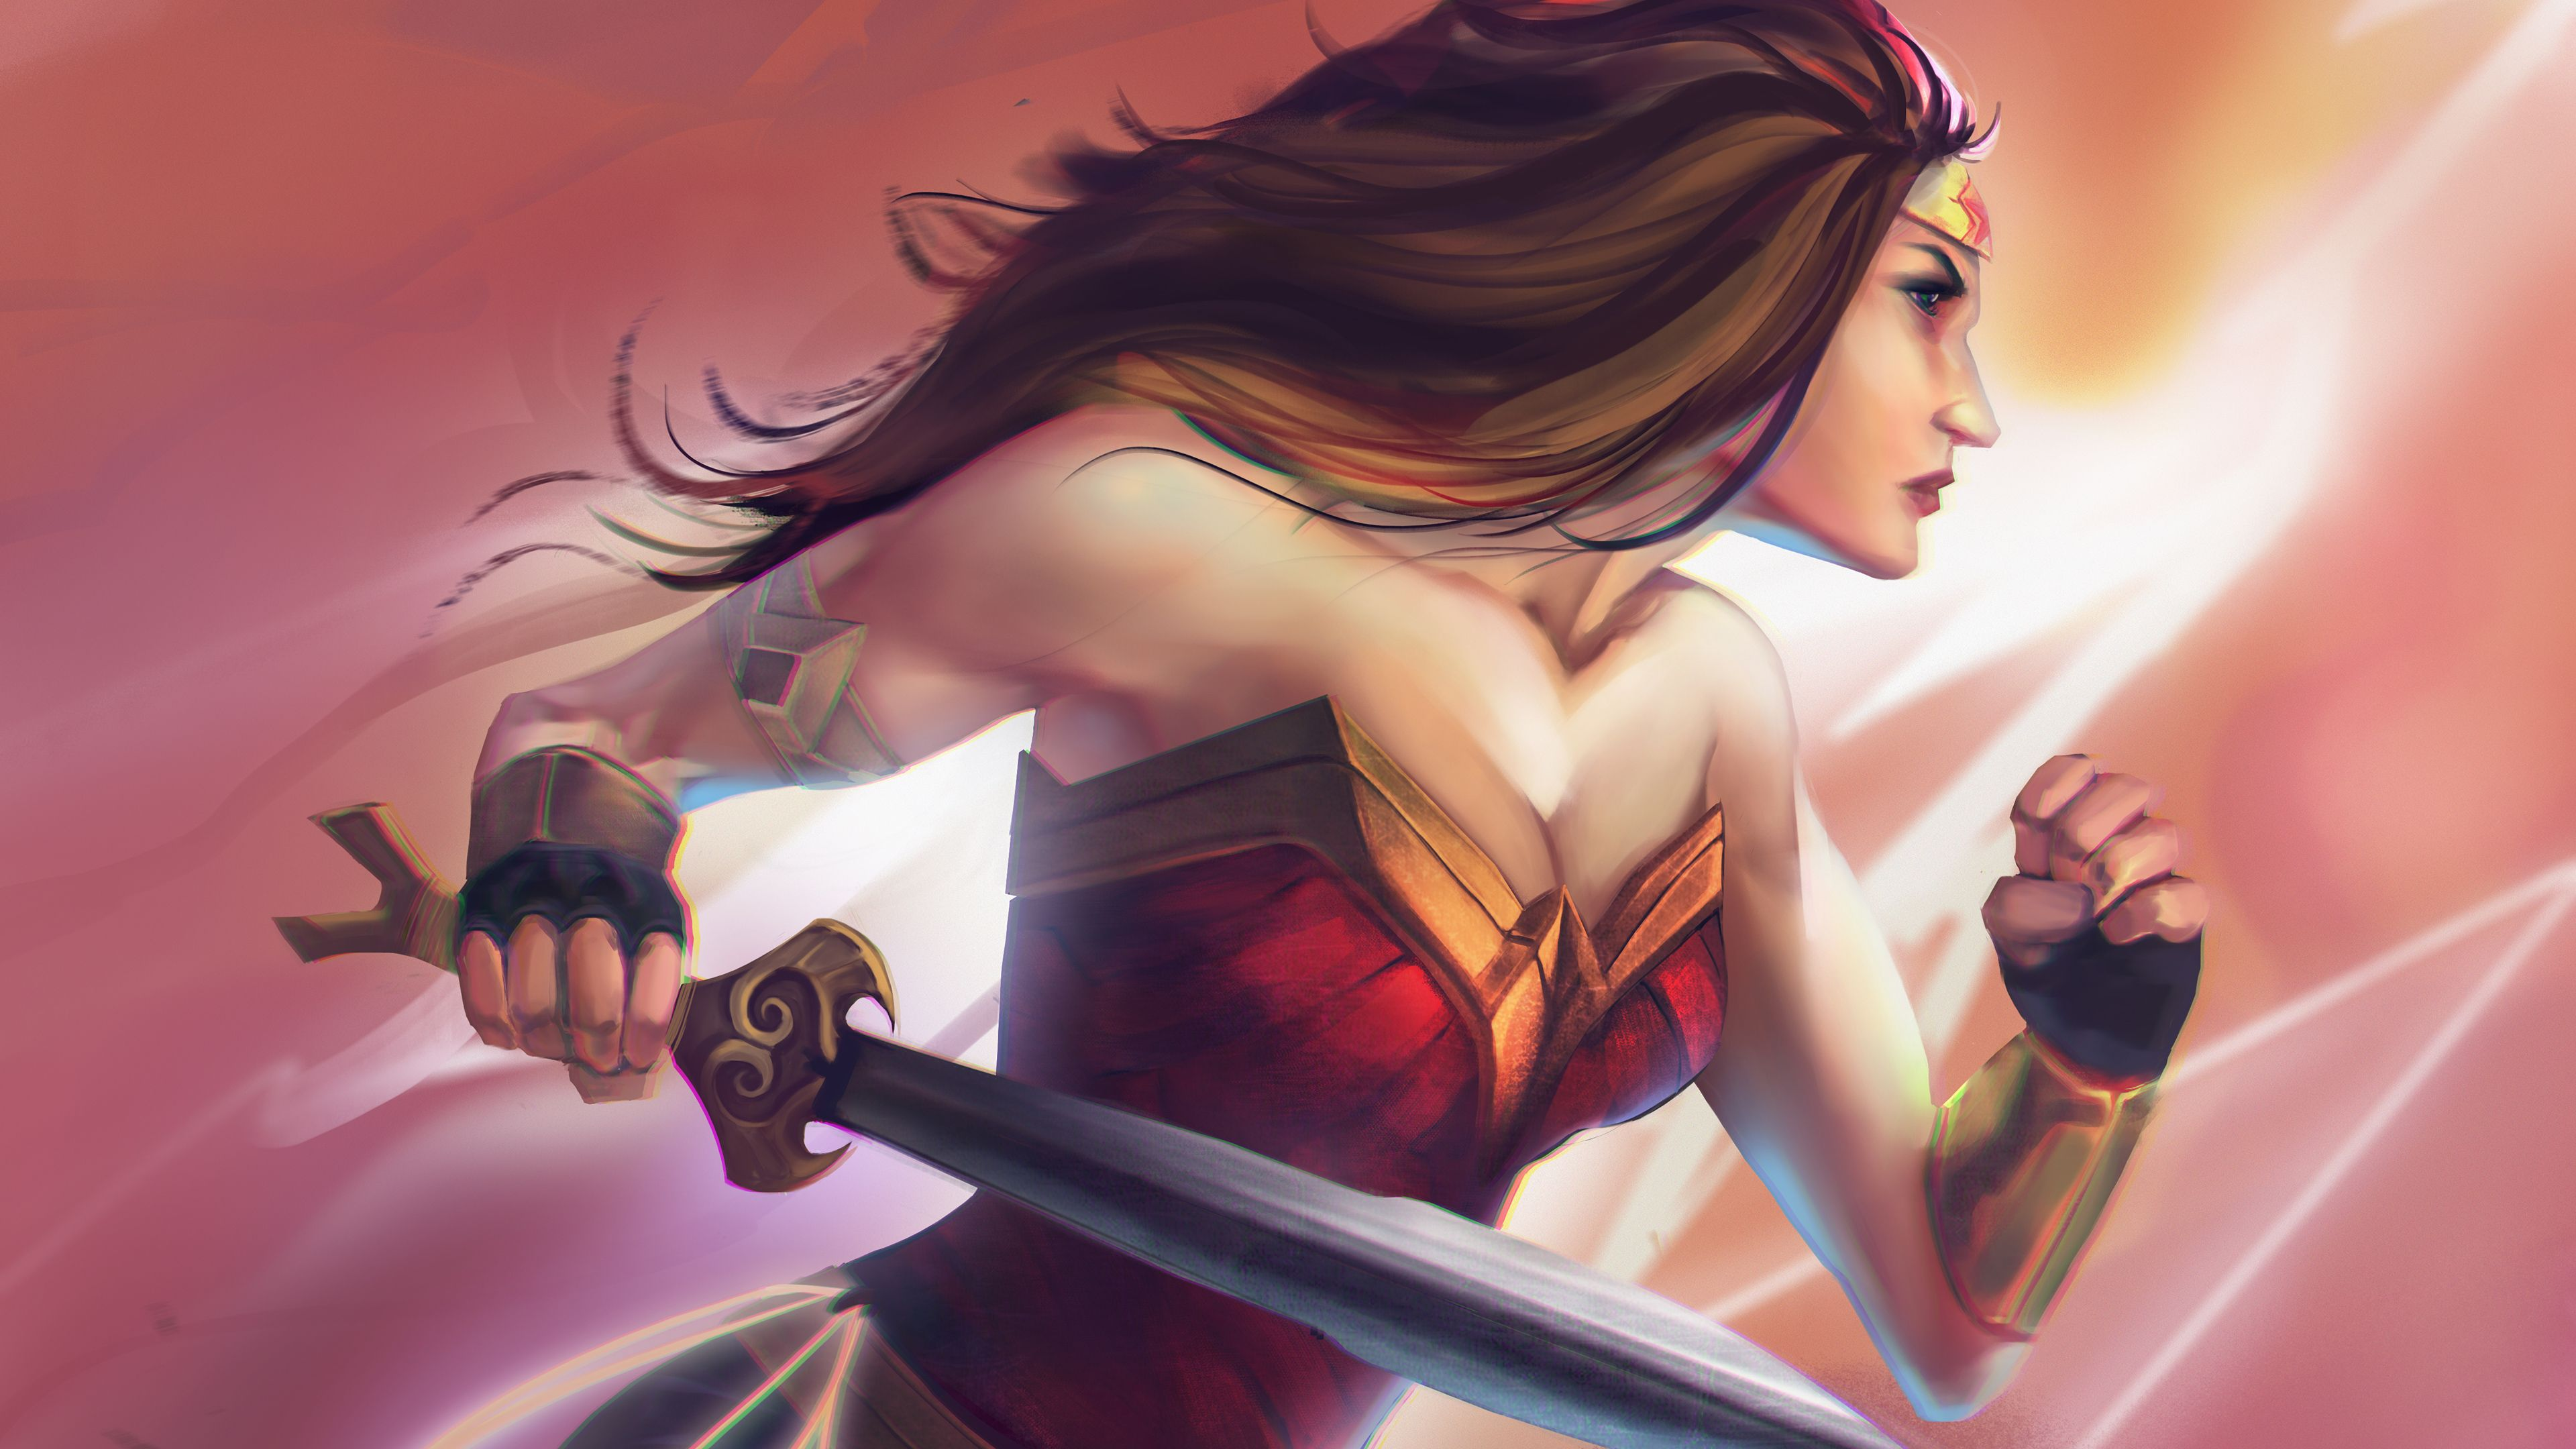 Wonder Woman Paint Art 4k Wonder Woman Wallpapers Superheroes Wallpapers Hd Wallpapers Digital Art Wallpapers Beh Wonder Woman Woman Painting Warrior Woman